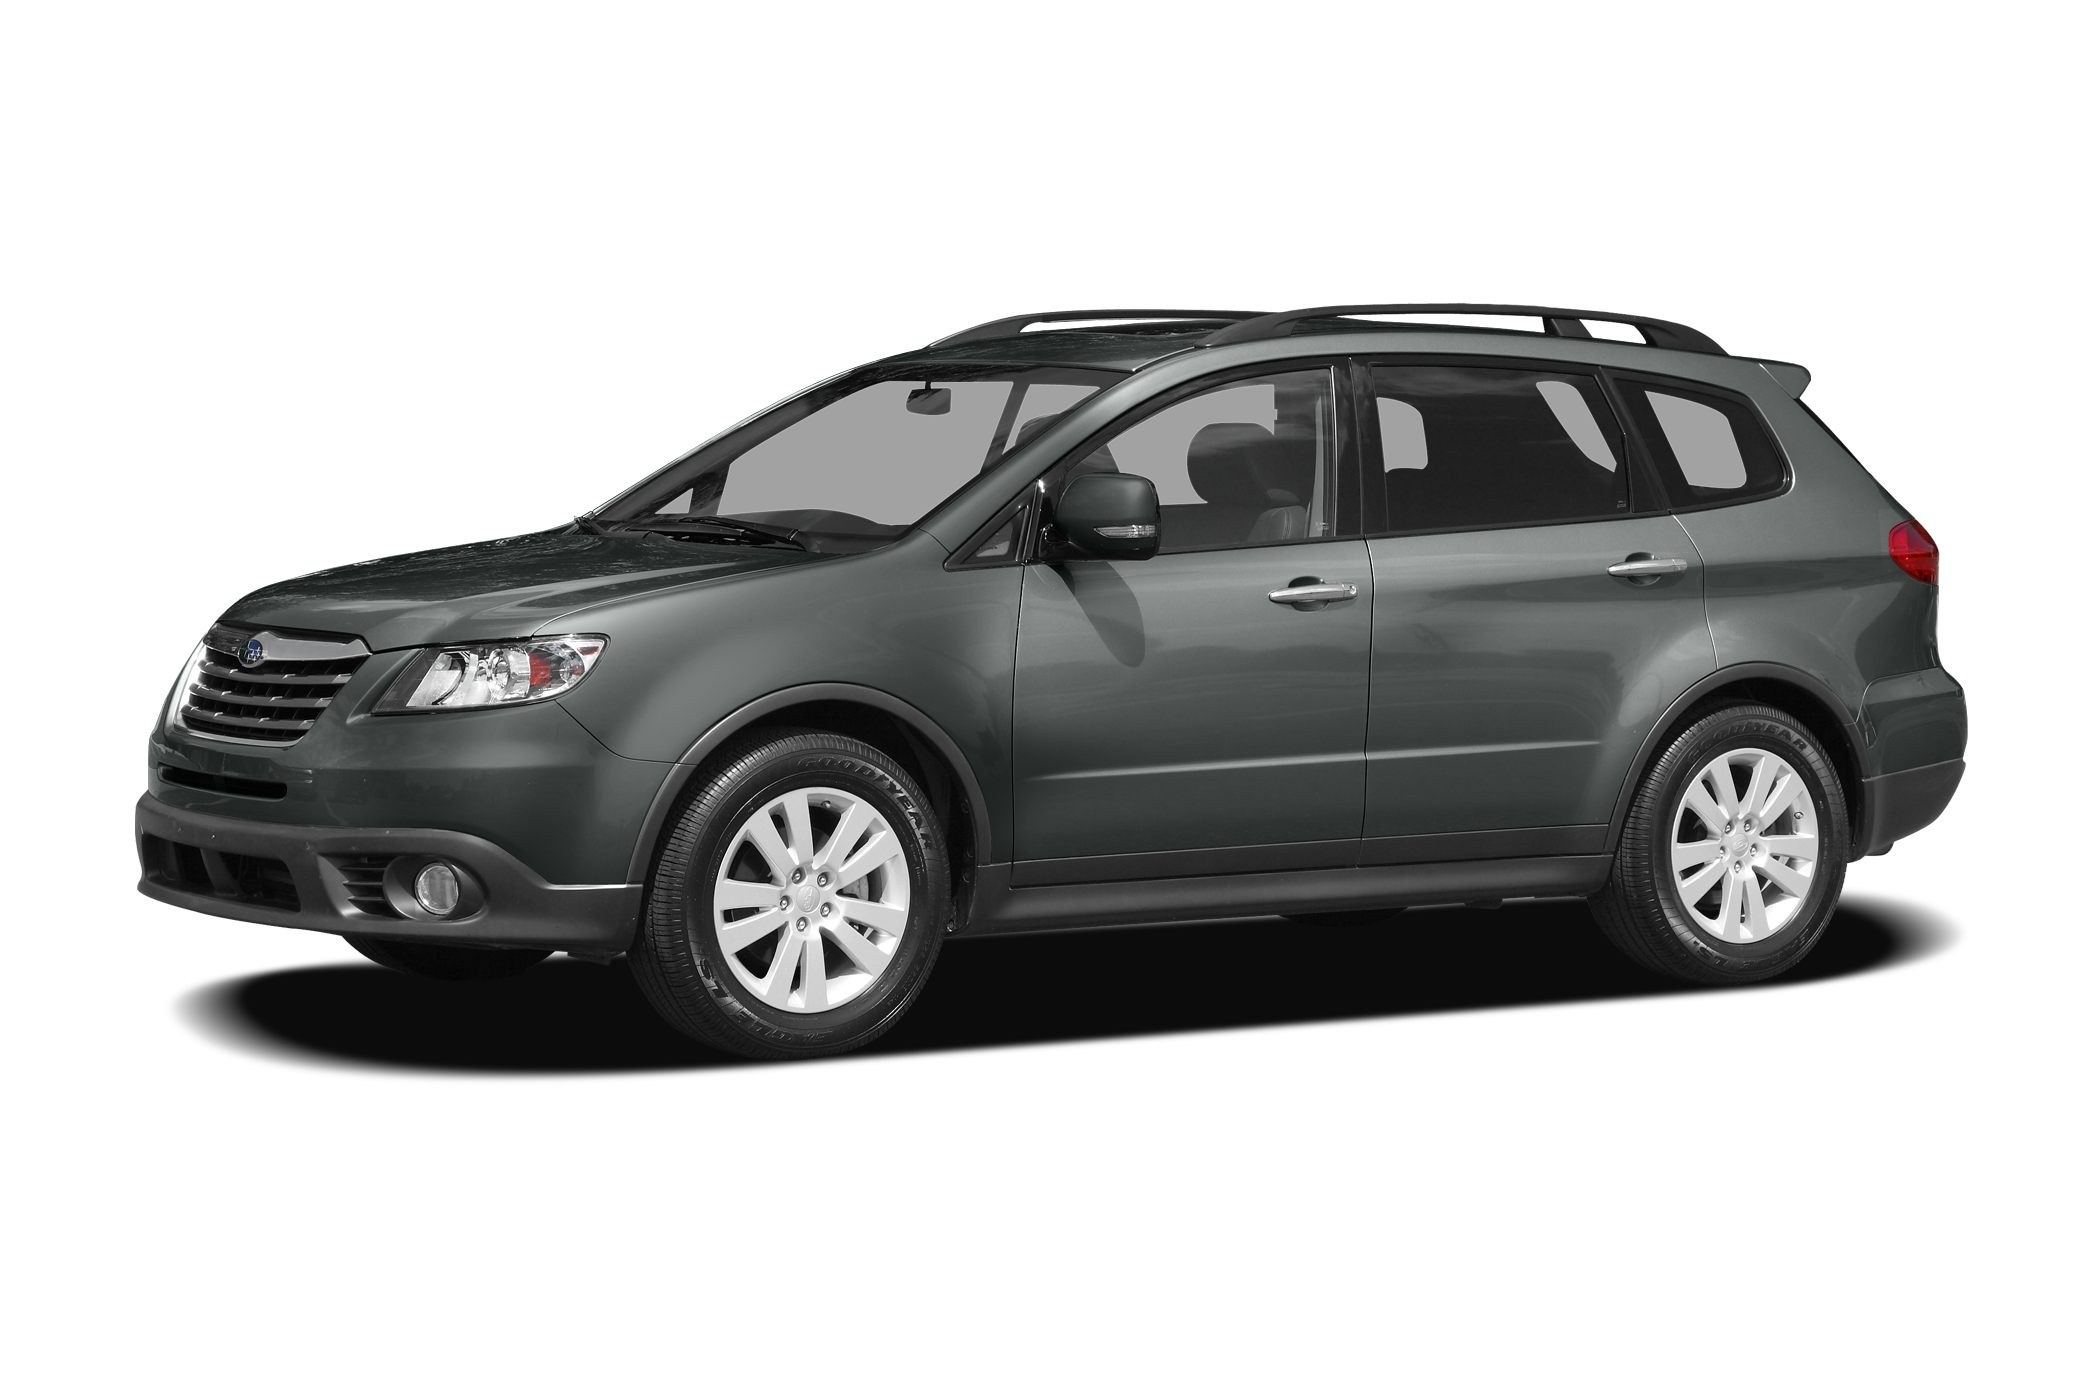 2009 subaru tribeca special edition 7 passenger 4dr all wheel 2009 subaru tribeca special edition 7 passenger 4dr all wheel drive specs and prices vanachro Images